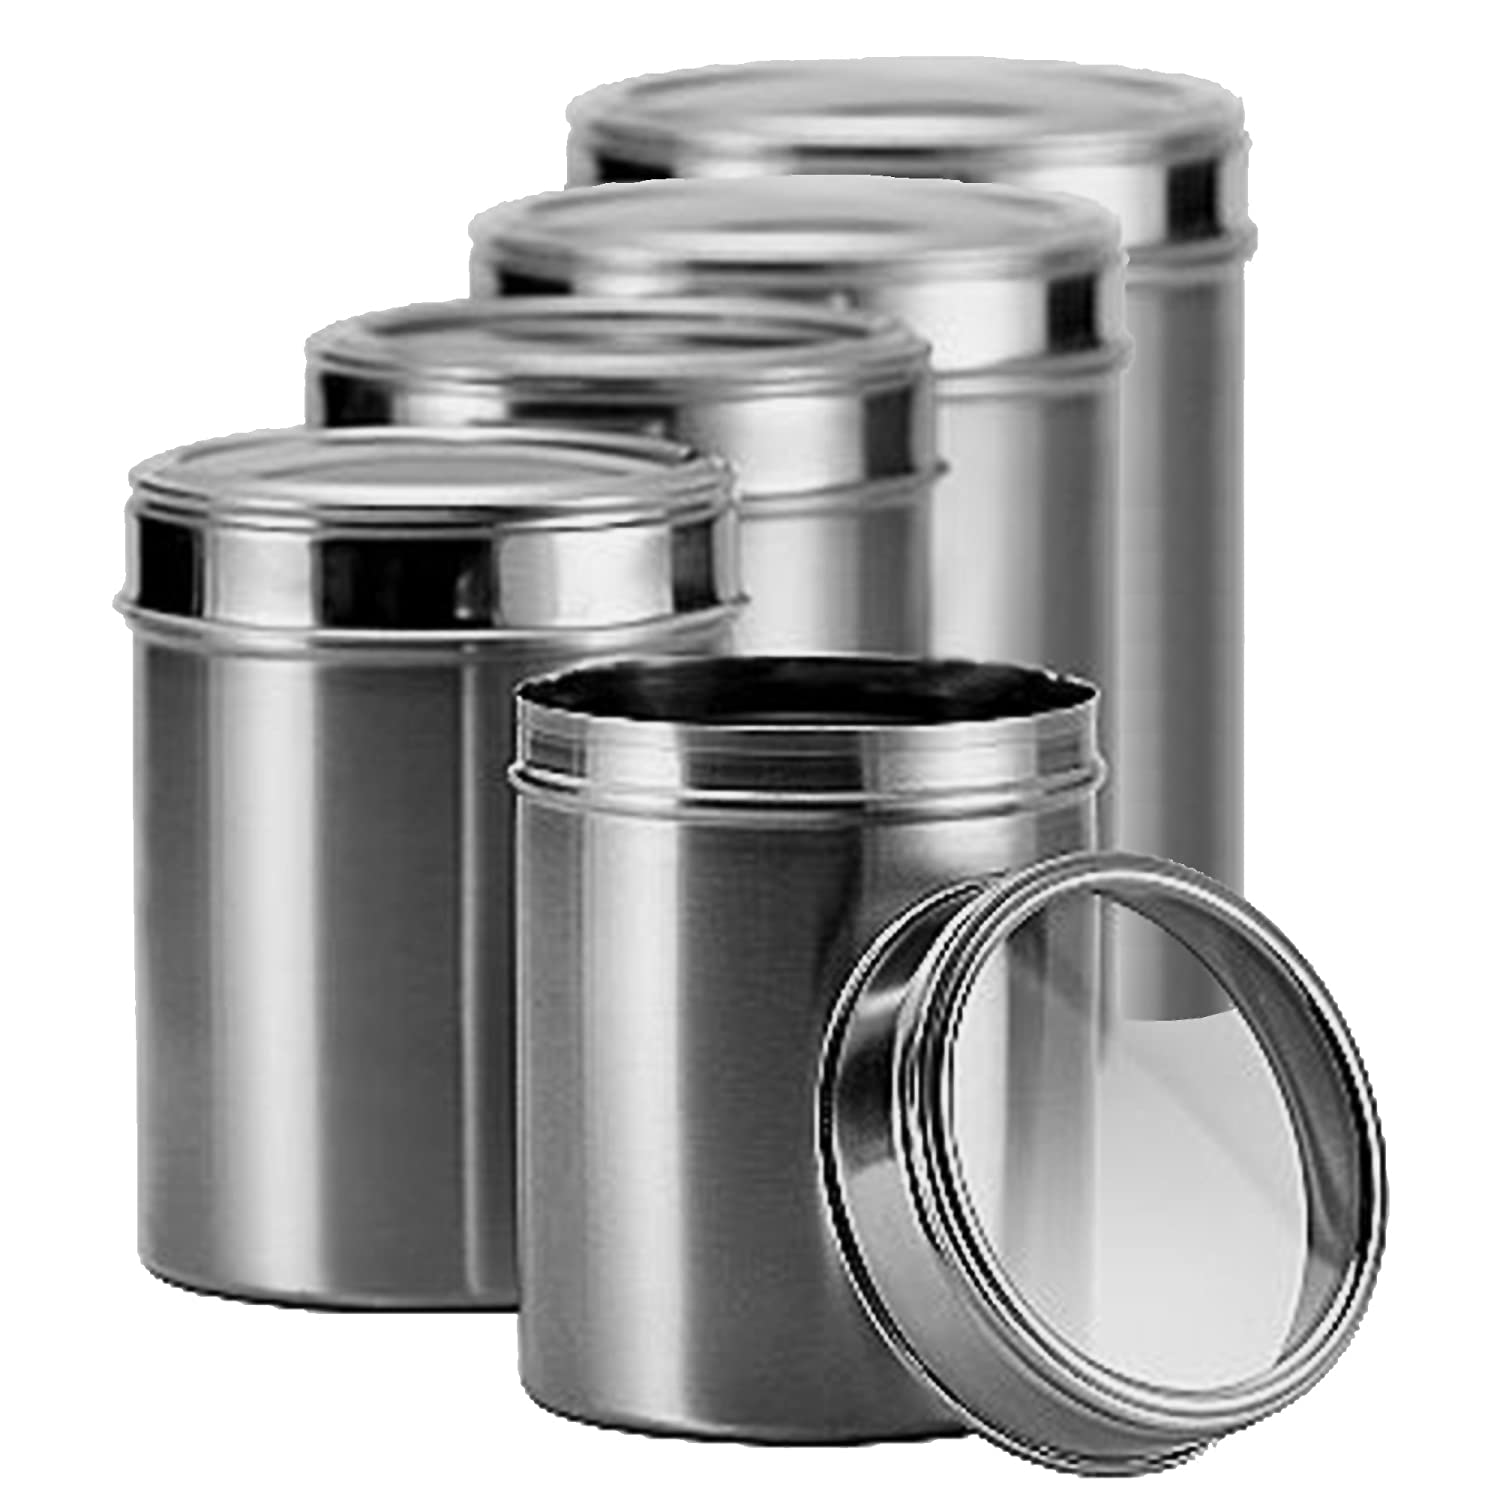 Brand New! Matbah 5 Piece Stainless Steel Canister Set